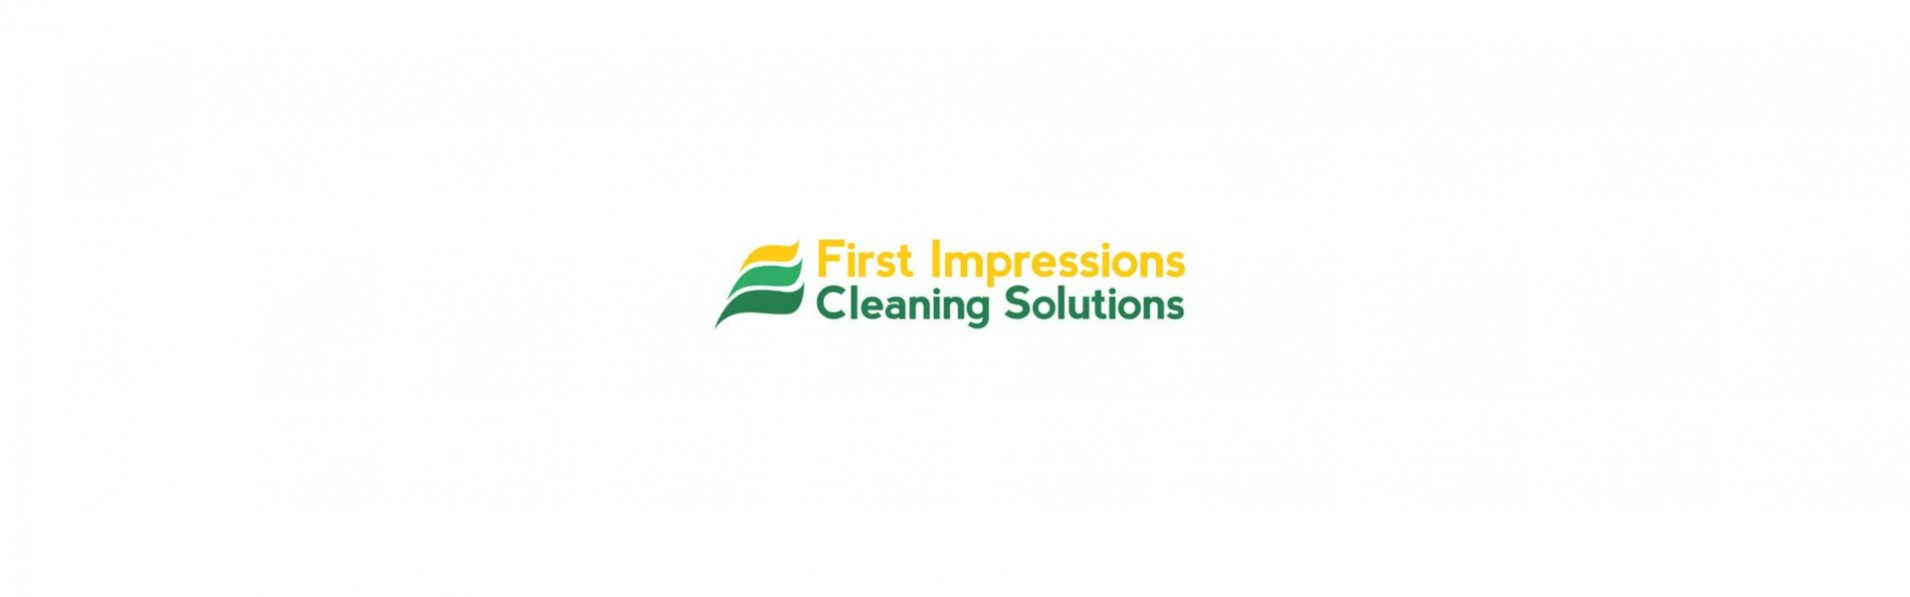 Logo design for carpet cleaning service provider